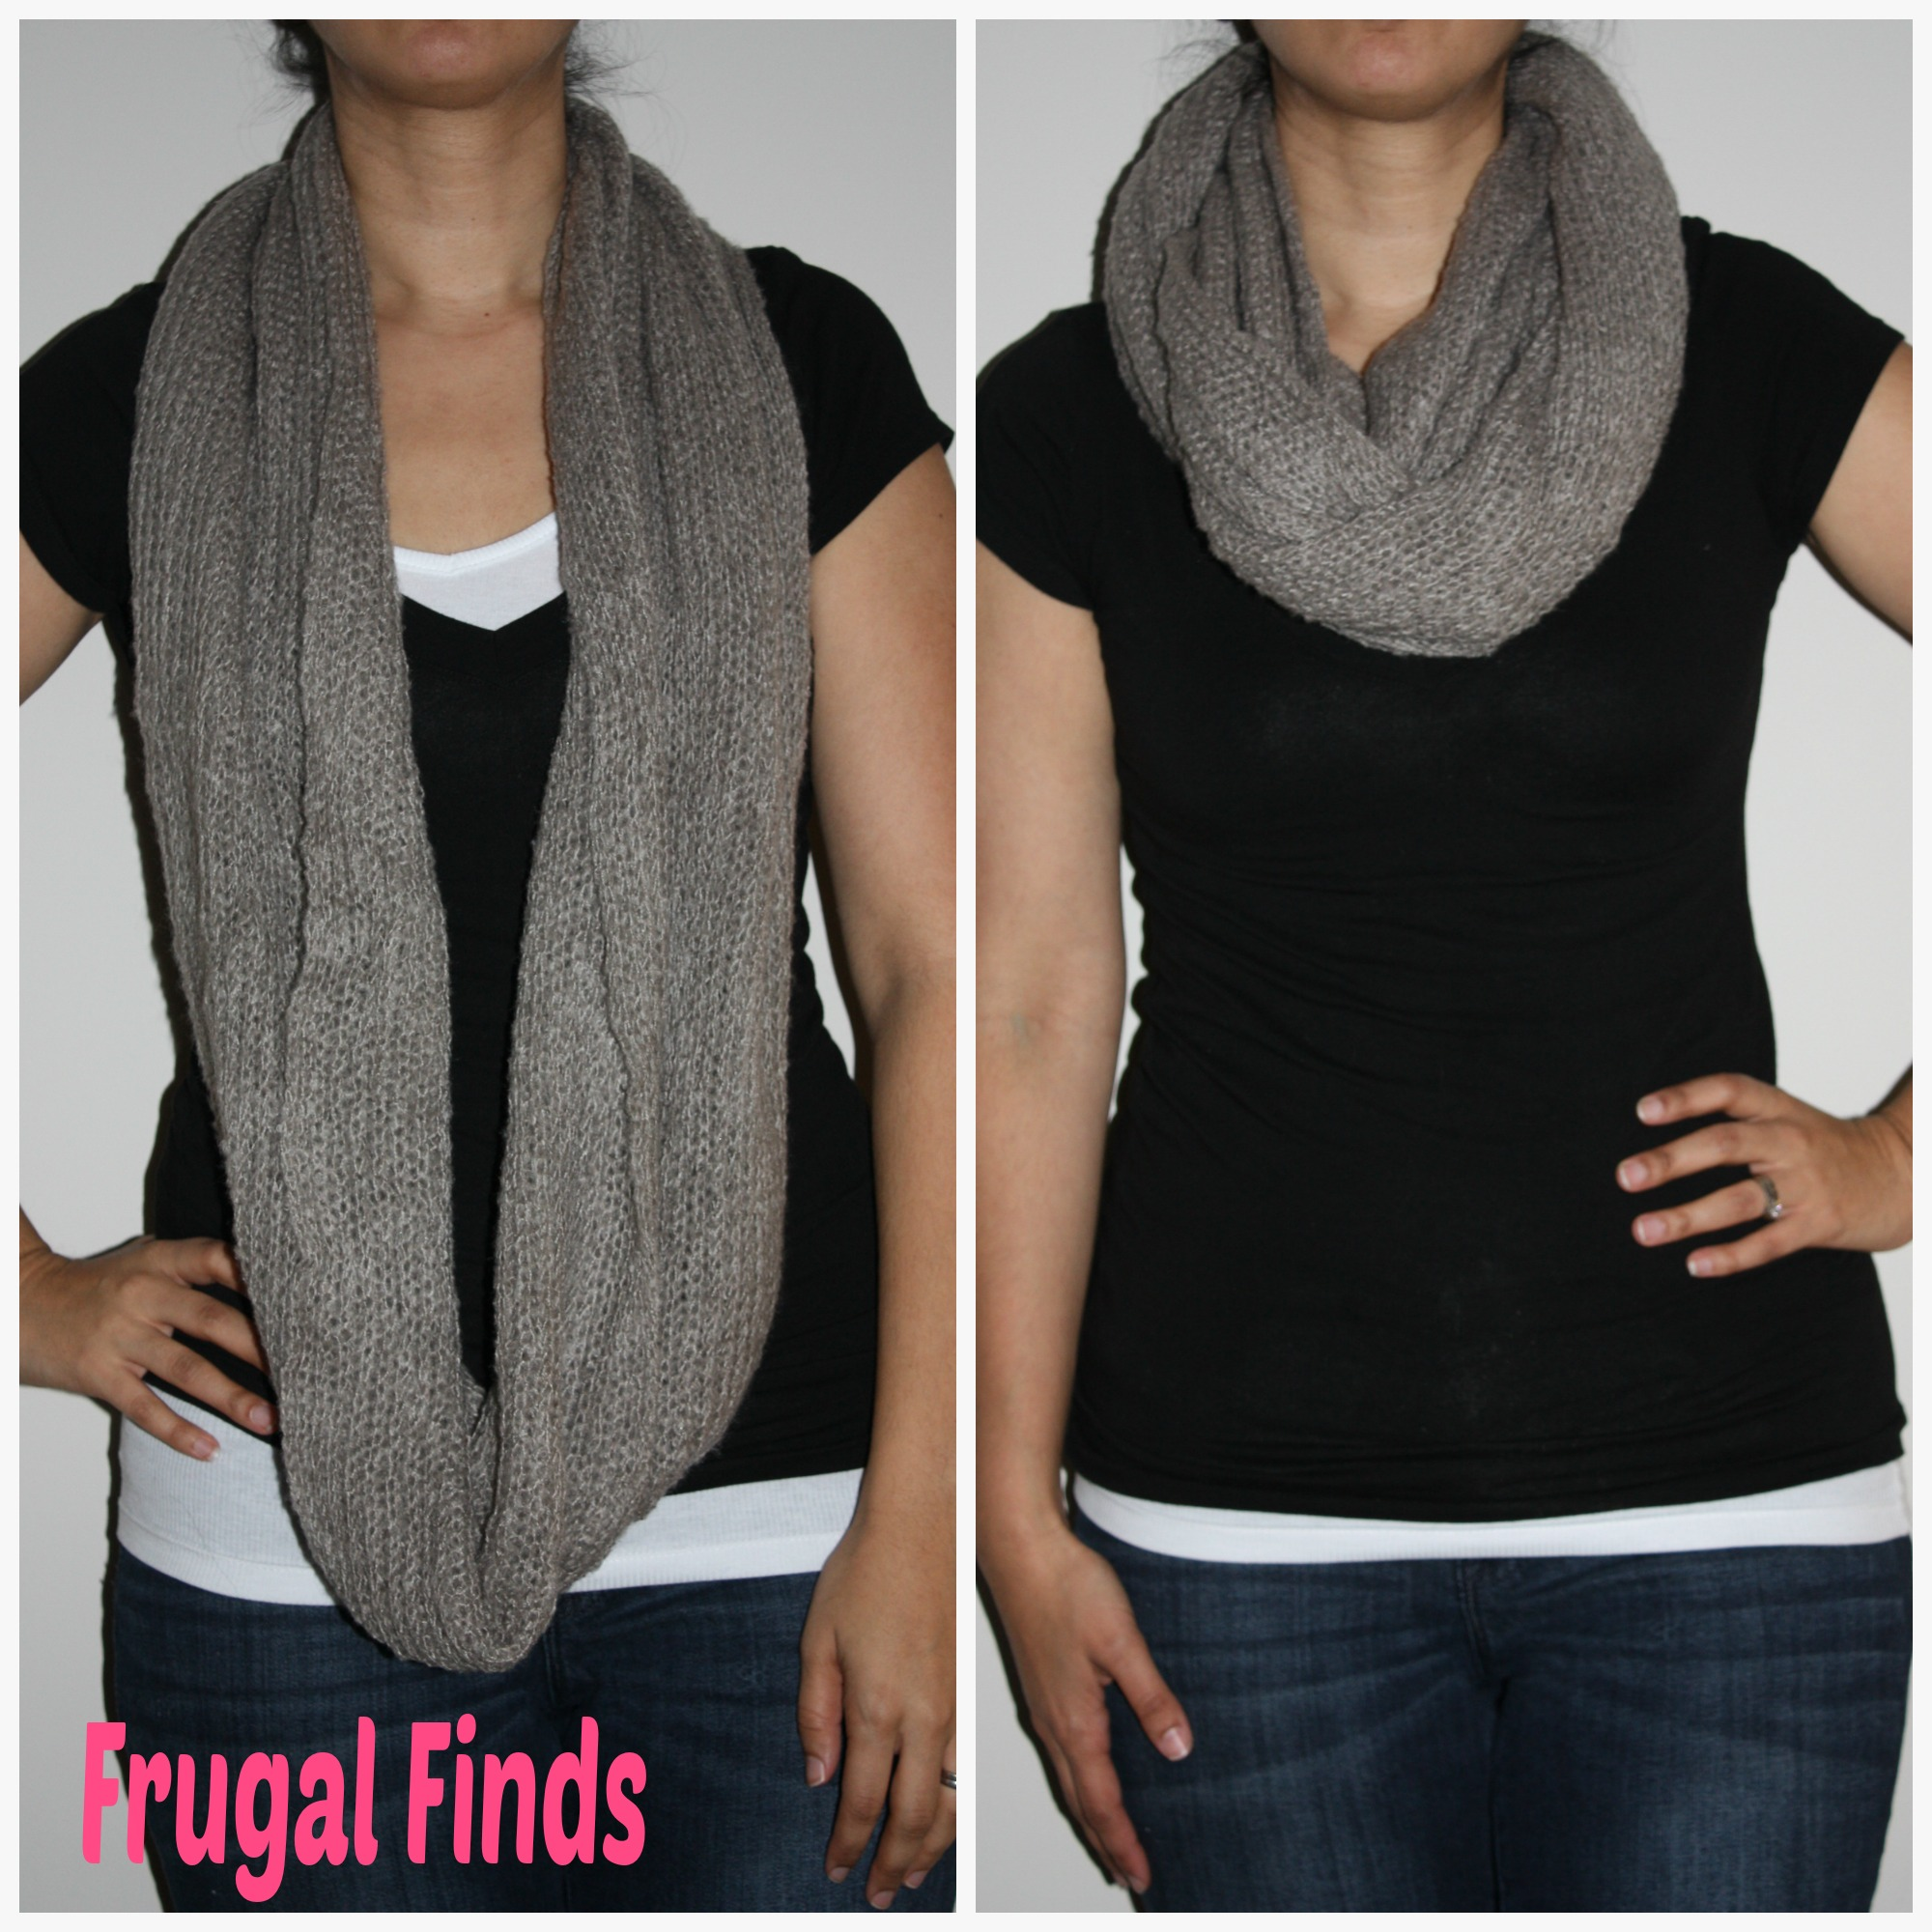 Frugal Finds - Infinity Scarf